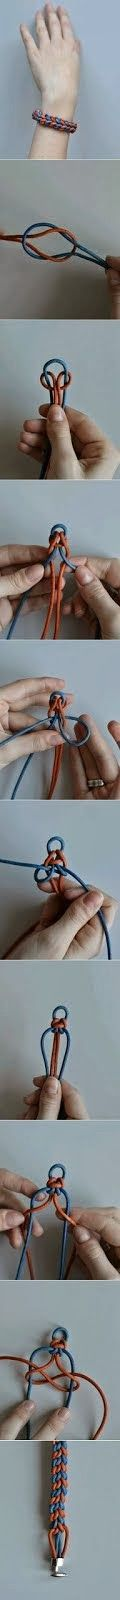 This might be a tutorial on how to make a bracelet, but every time it gets posted, all I can see is a dead hand...